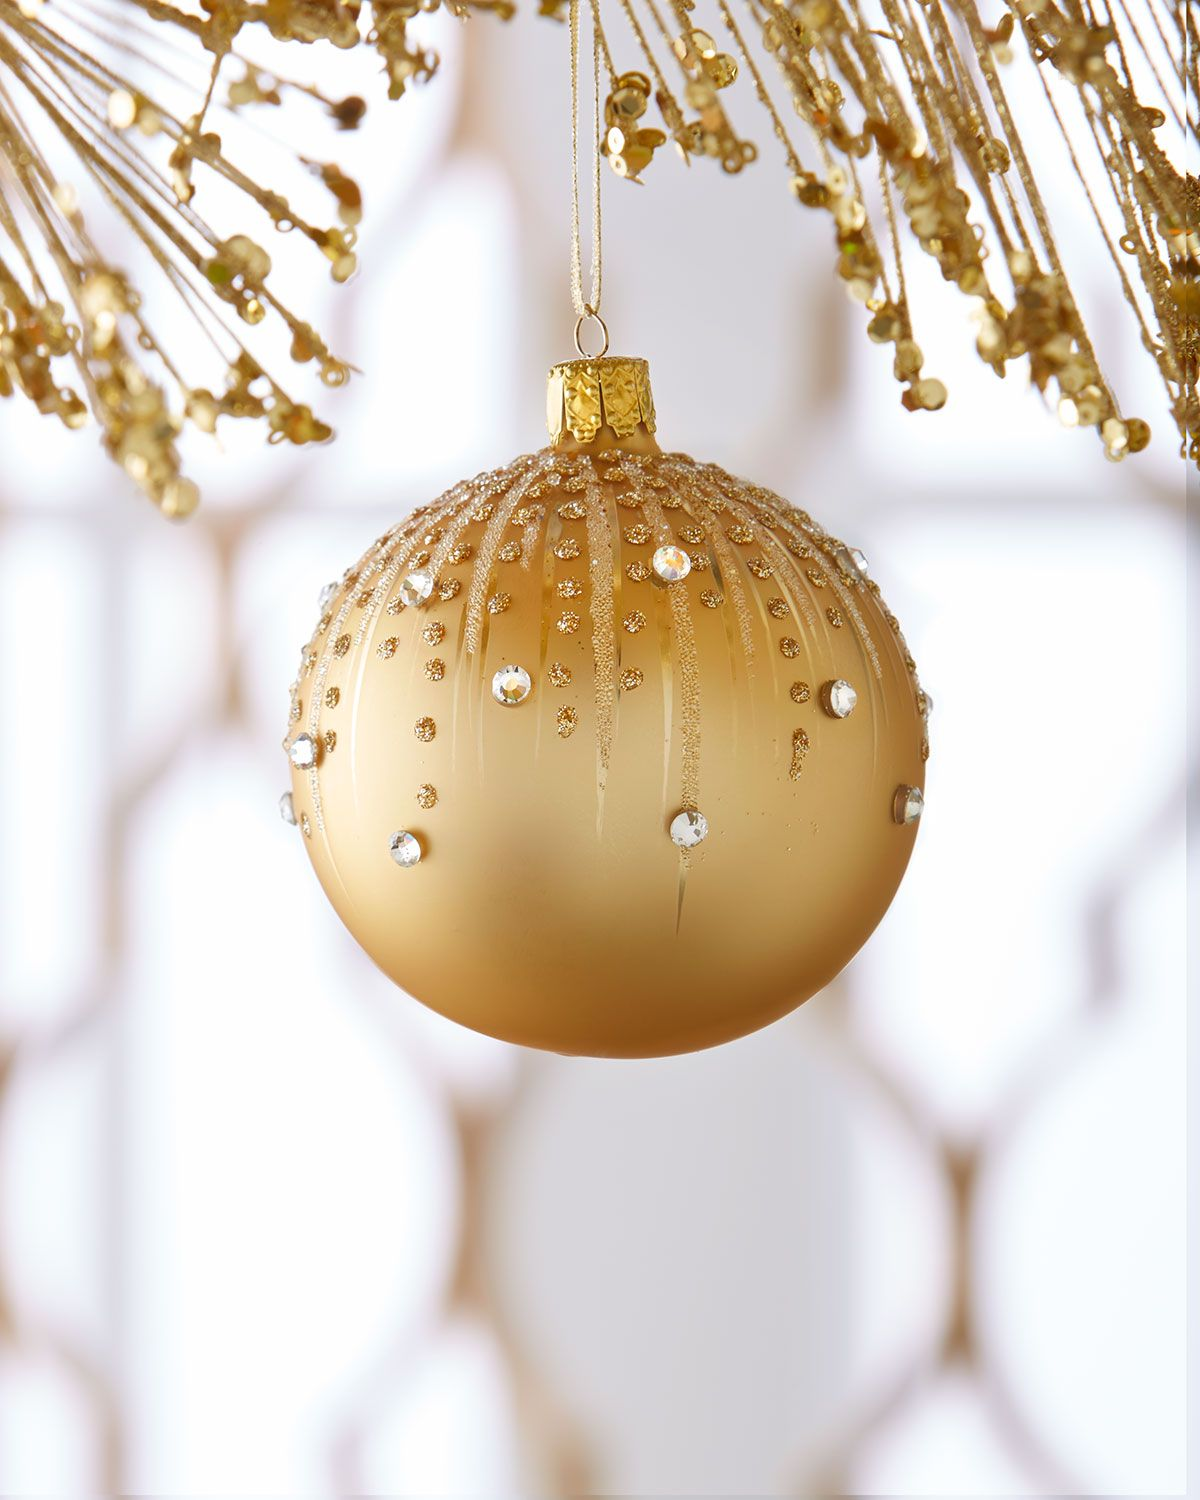 Shop Golden Embellished Ball Christmas Ornament at Horchow, where you'll  find new lower shipping on hundreds of home furnishings and gifts.